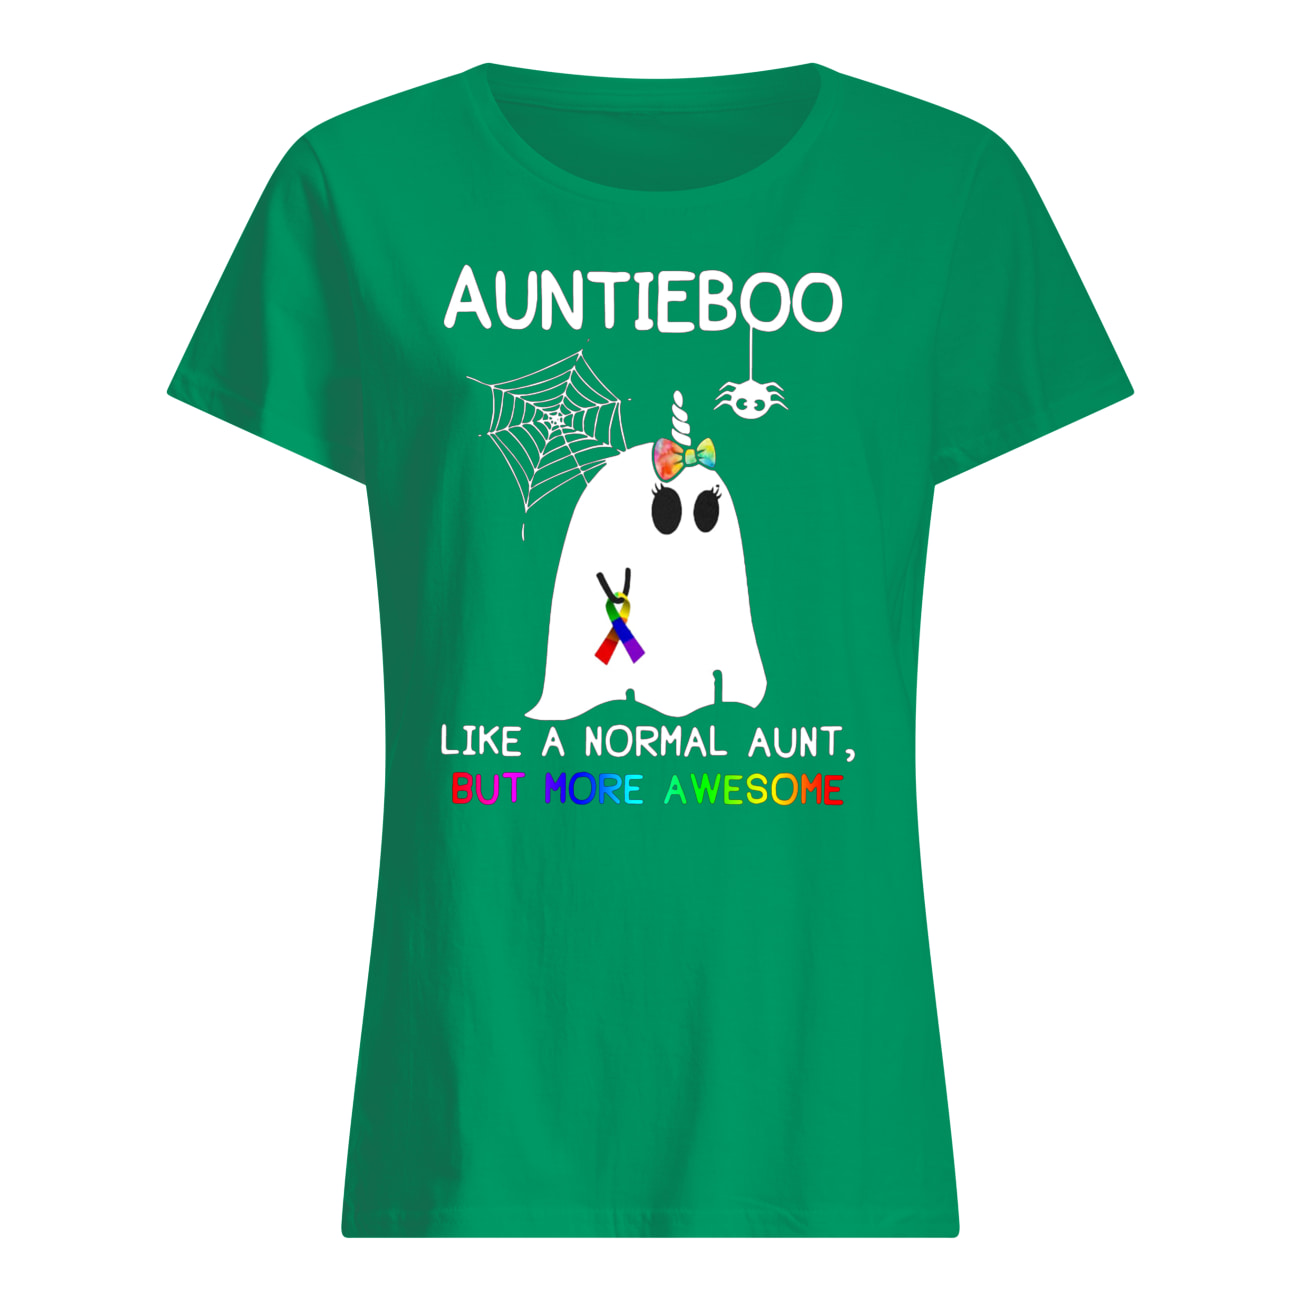 Auntieboo like a normal aunt but more awesome cancer ribbon womens shirt